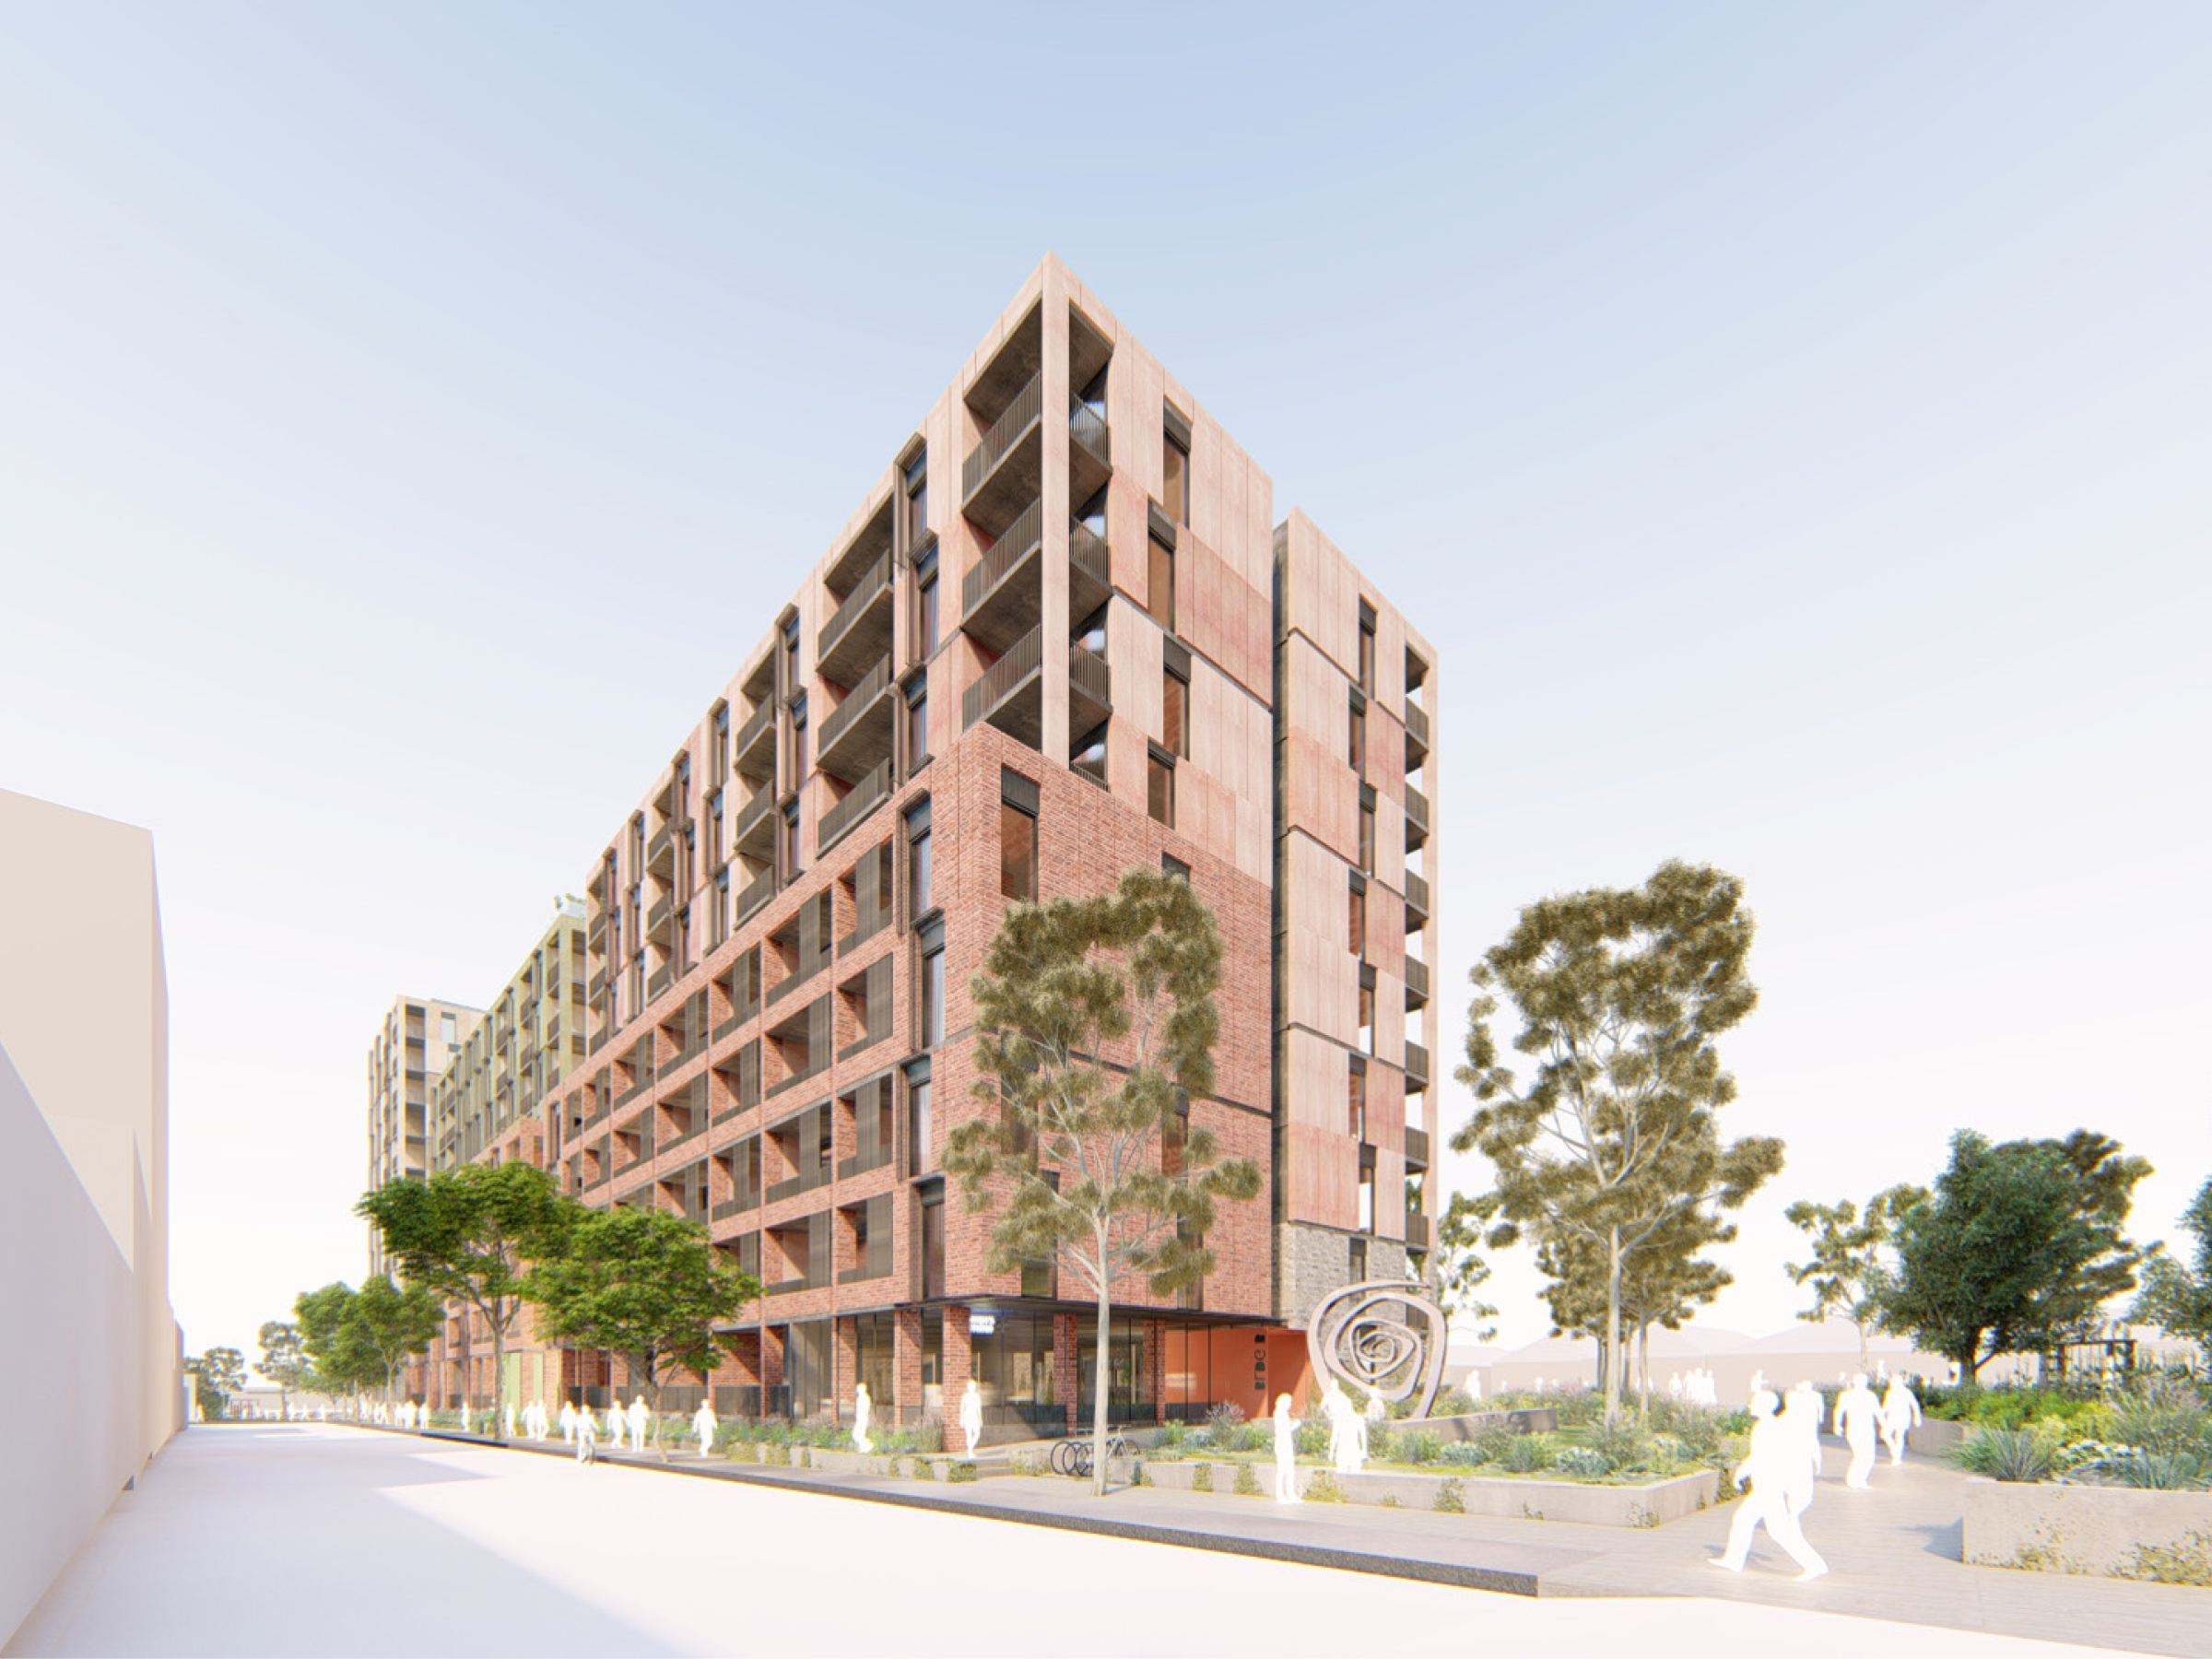 Artist impression looking at the new development from Bangs Street